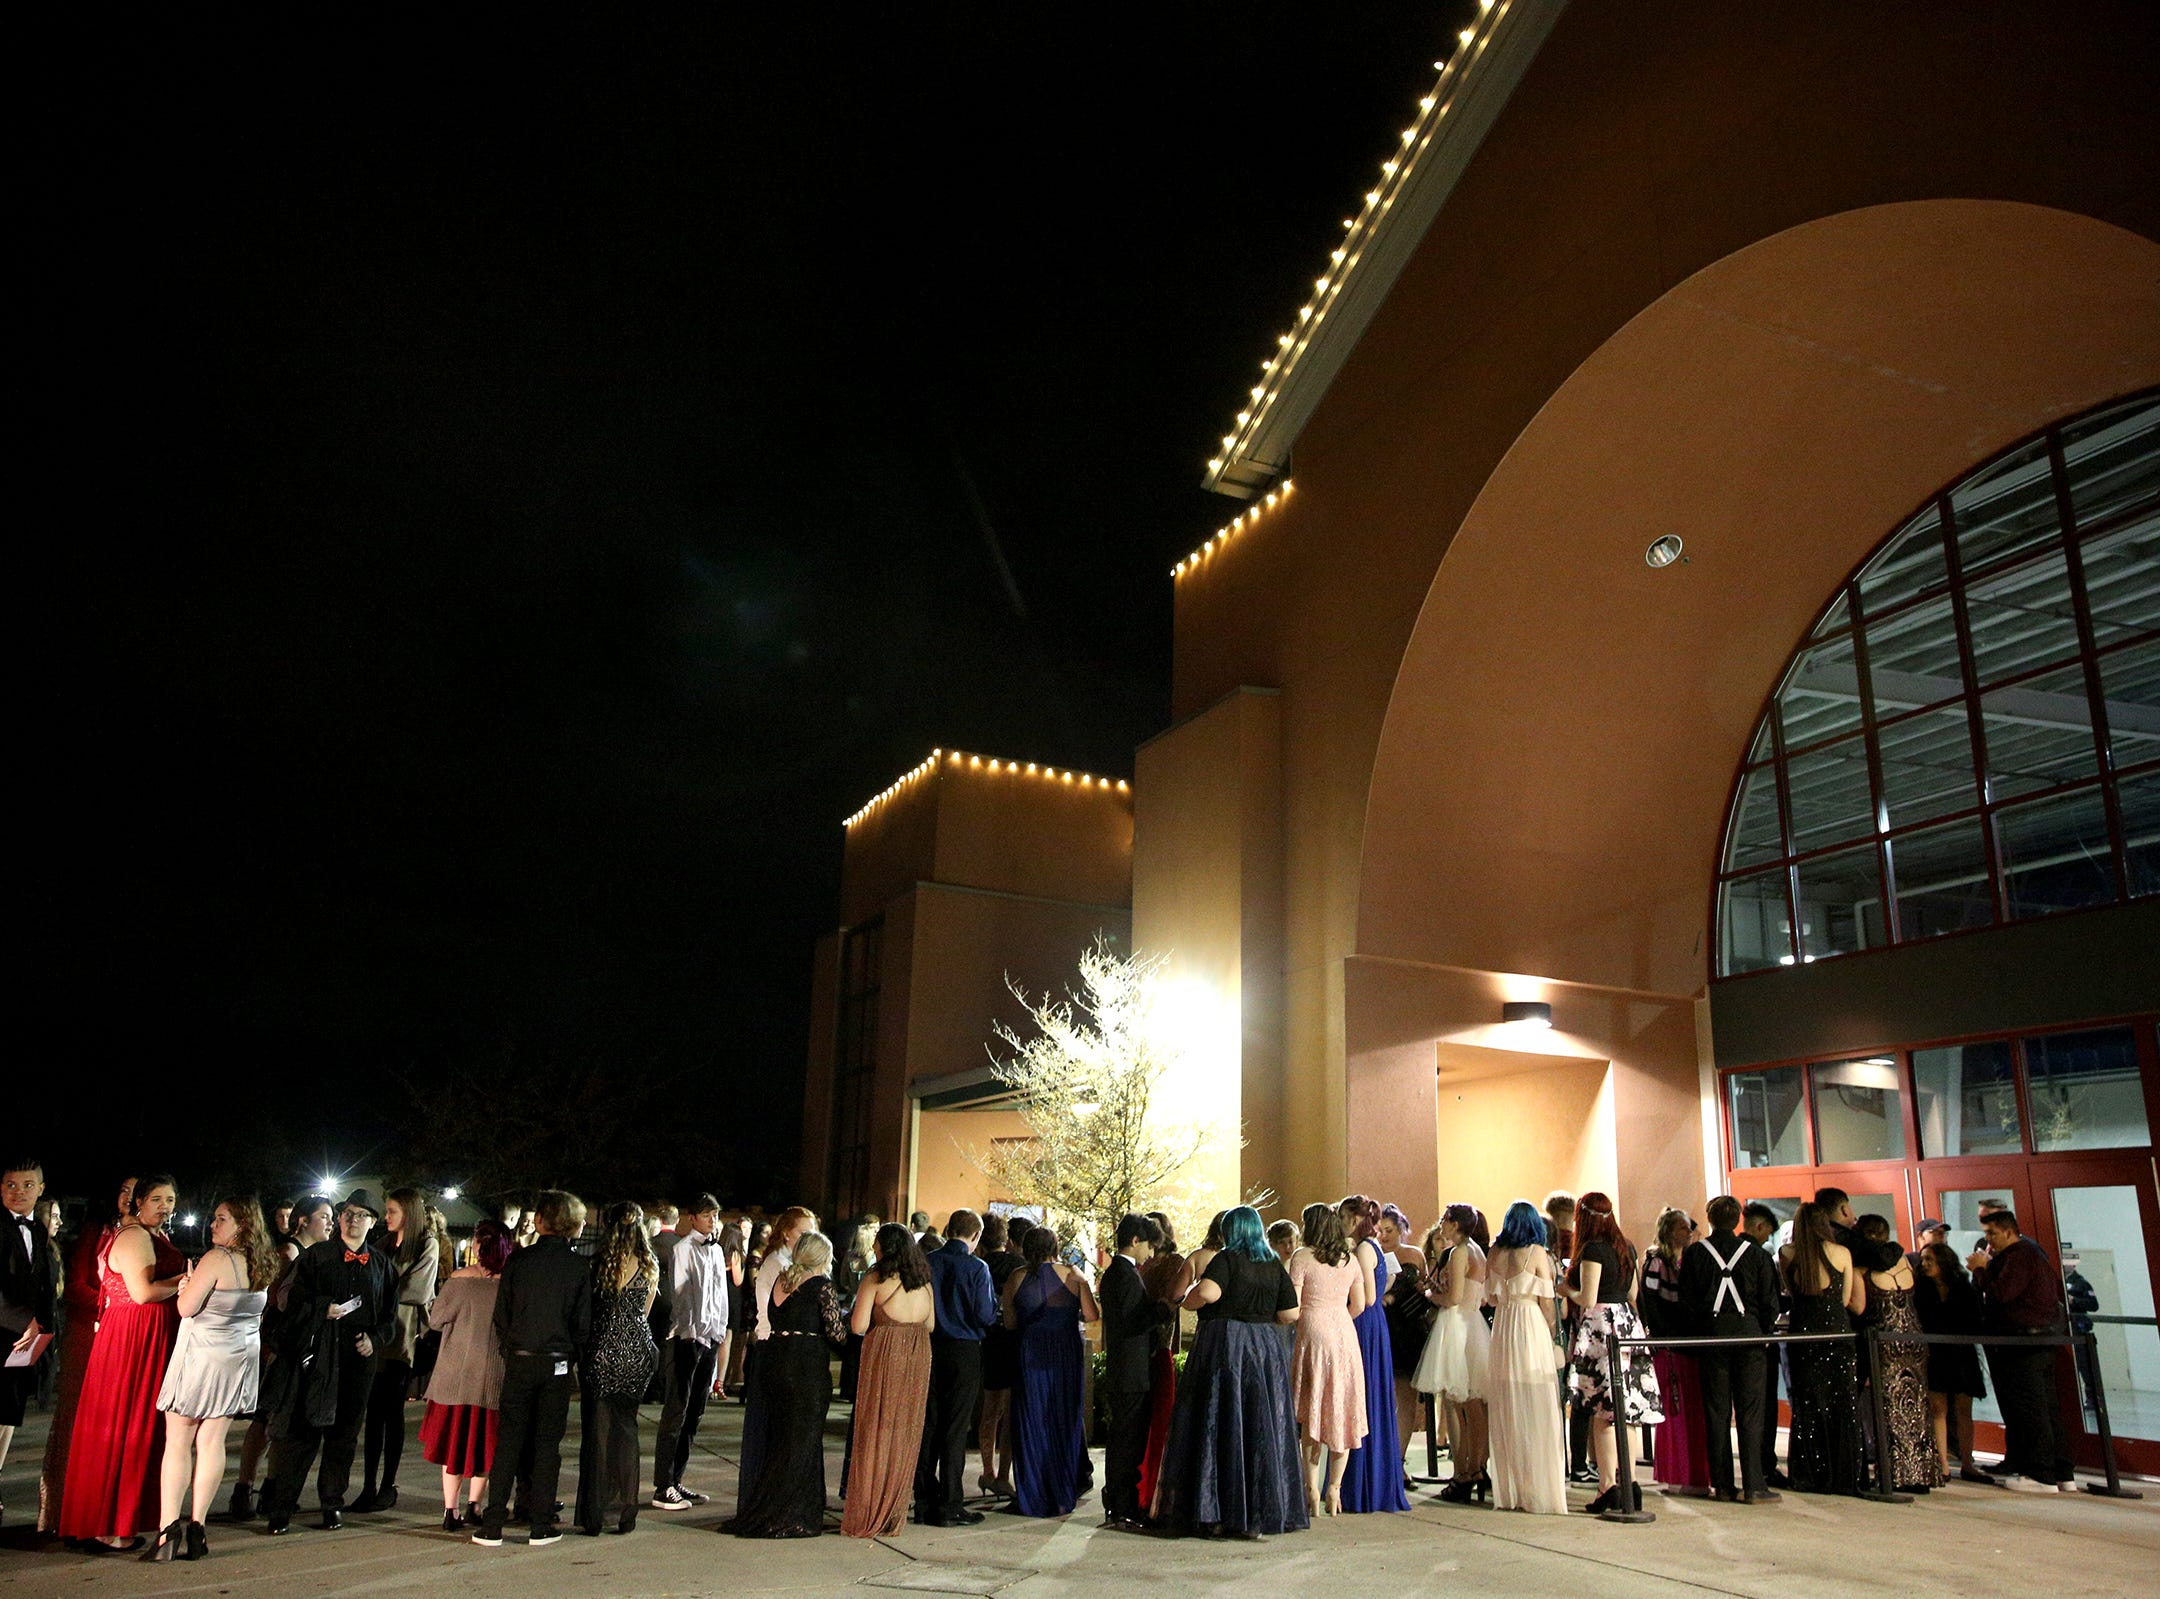 Students wait in line for the 65th annual SnoBall at the Oregon State Fairgrounds Pavilion in Salem on Saturday, Dec. 1, 2018.